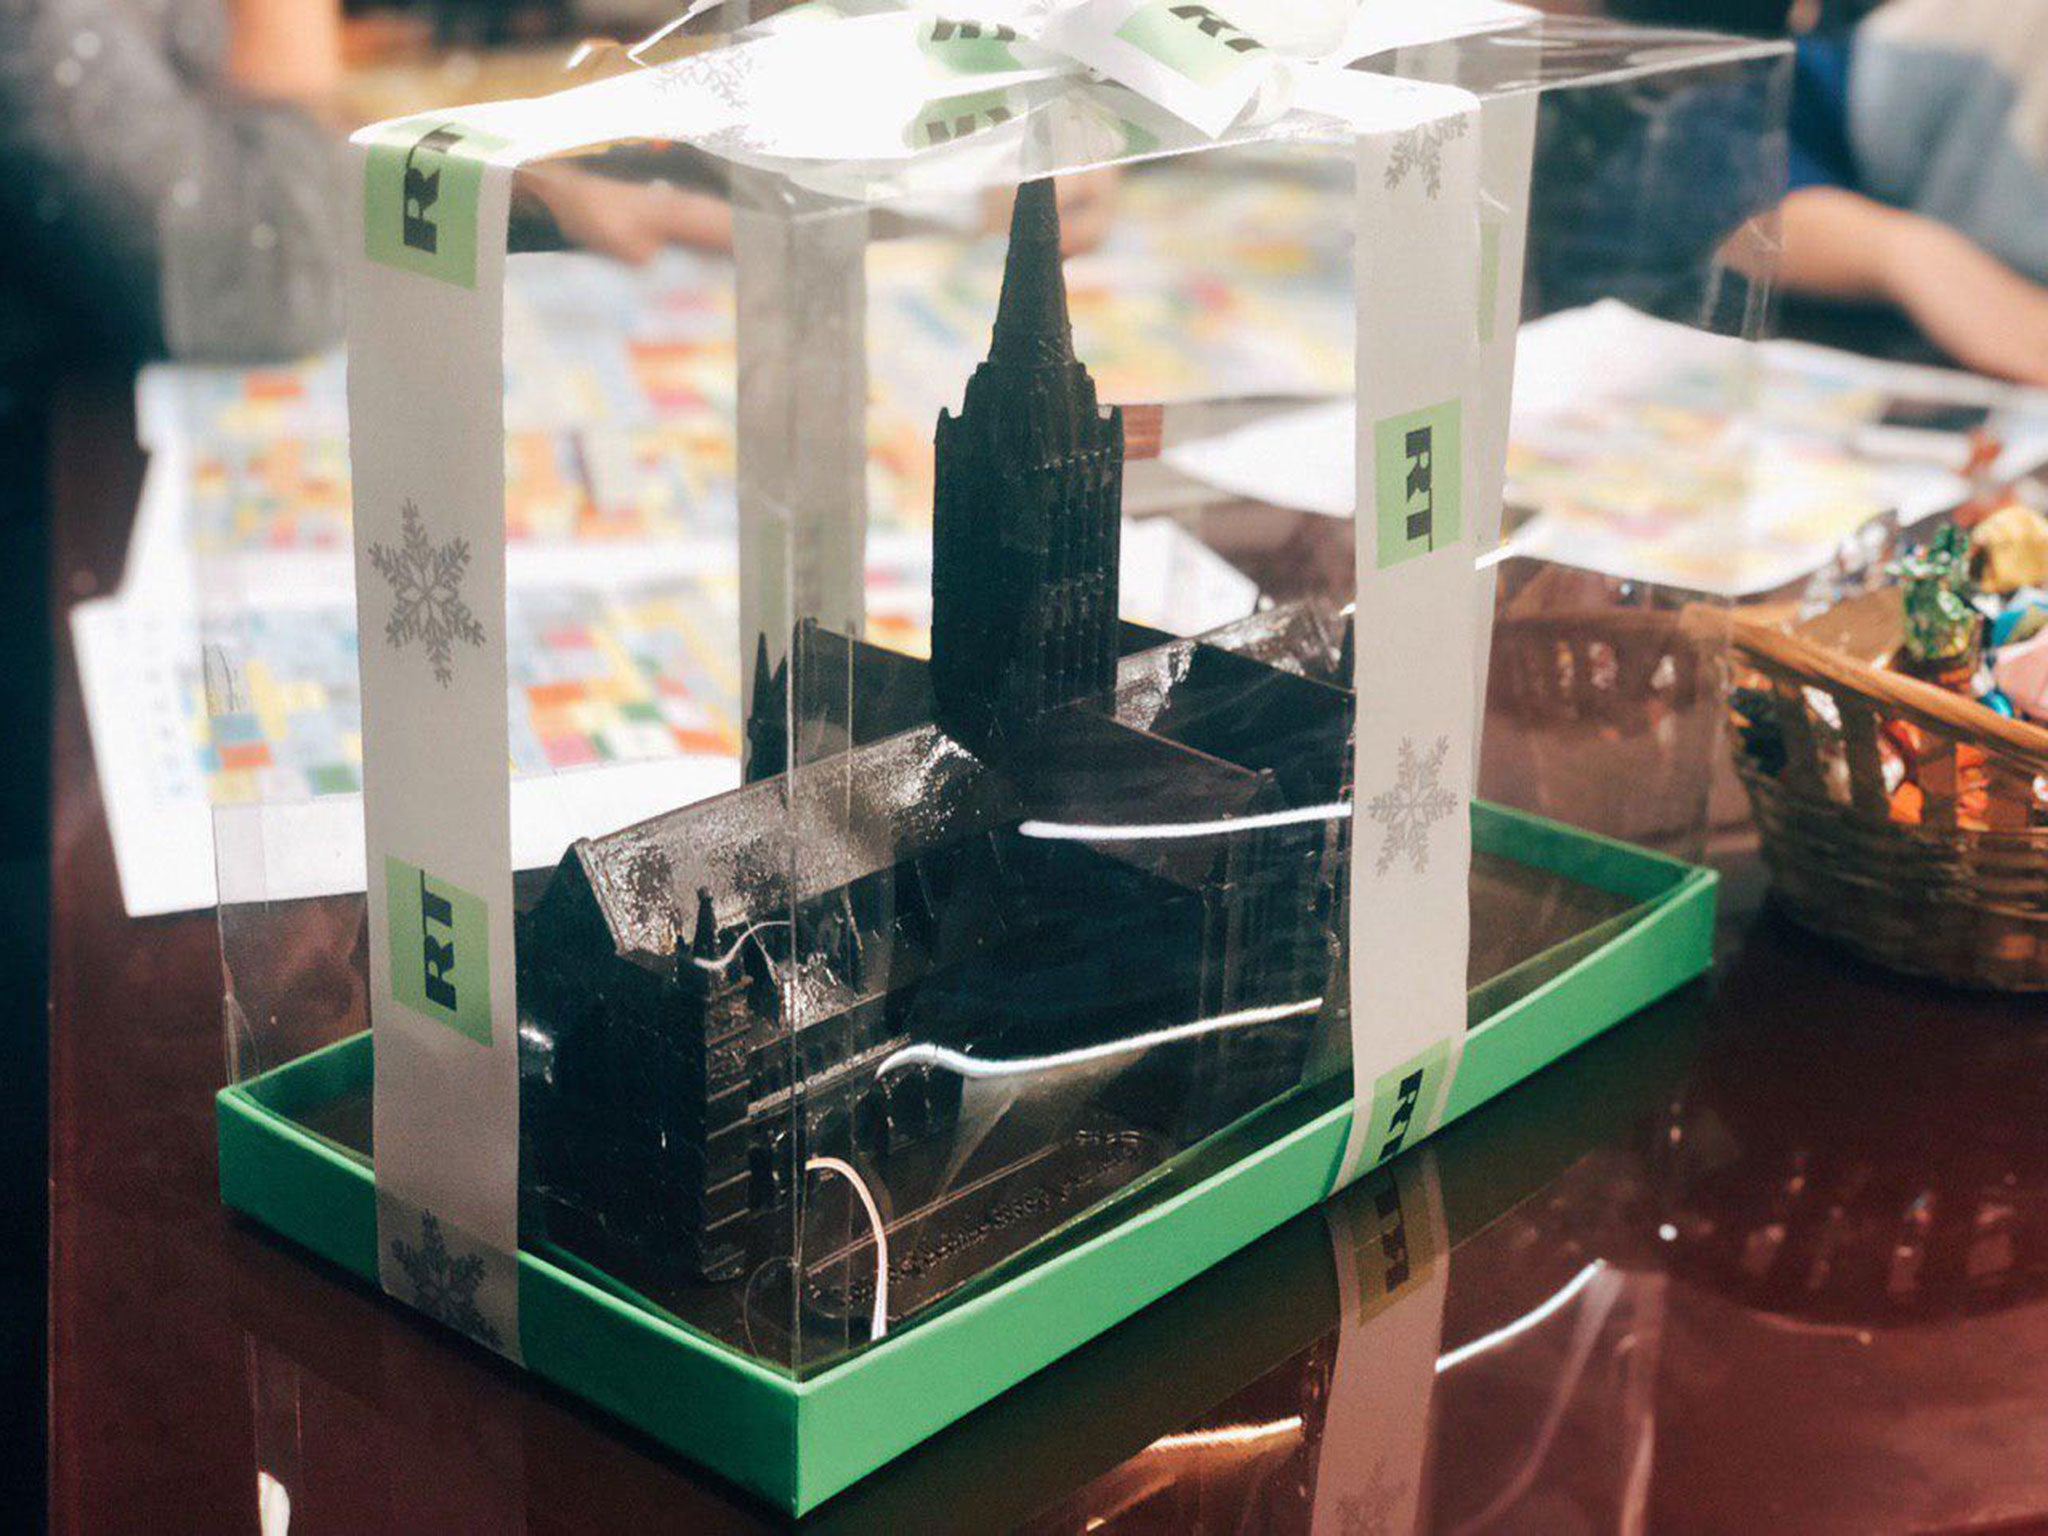 Russian state media sends chocolate models of Salisbury Cathedral as 'sick' gift referencing novichok attack